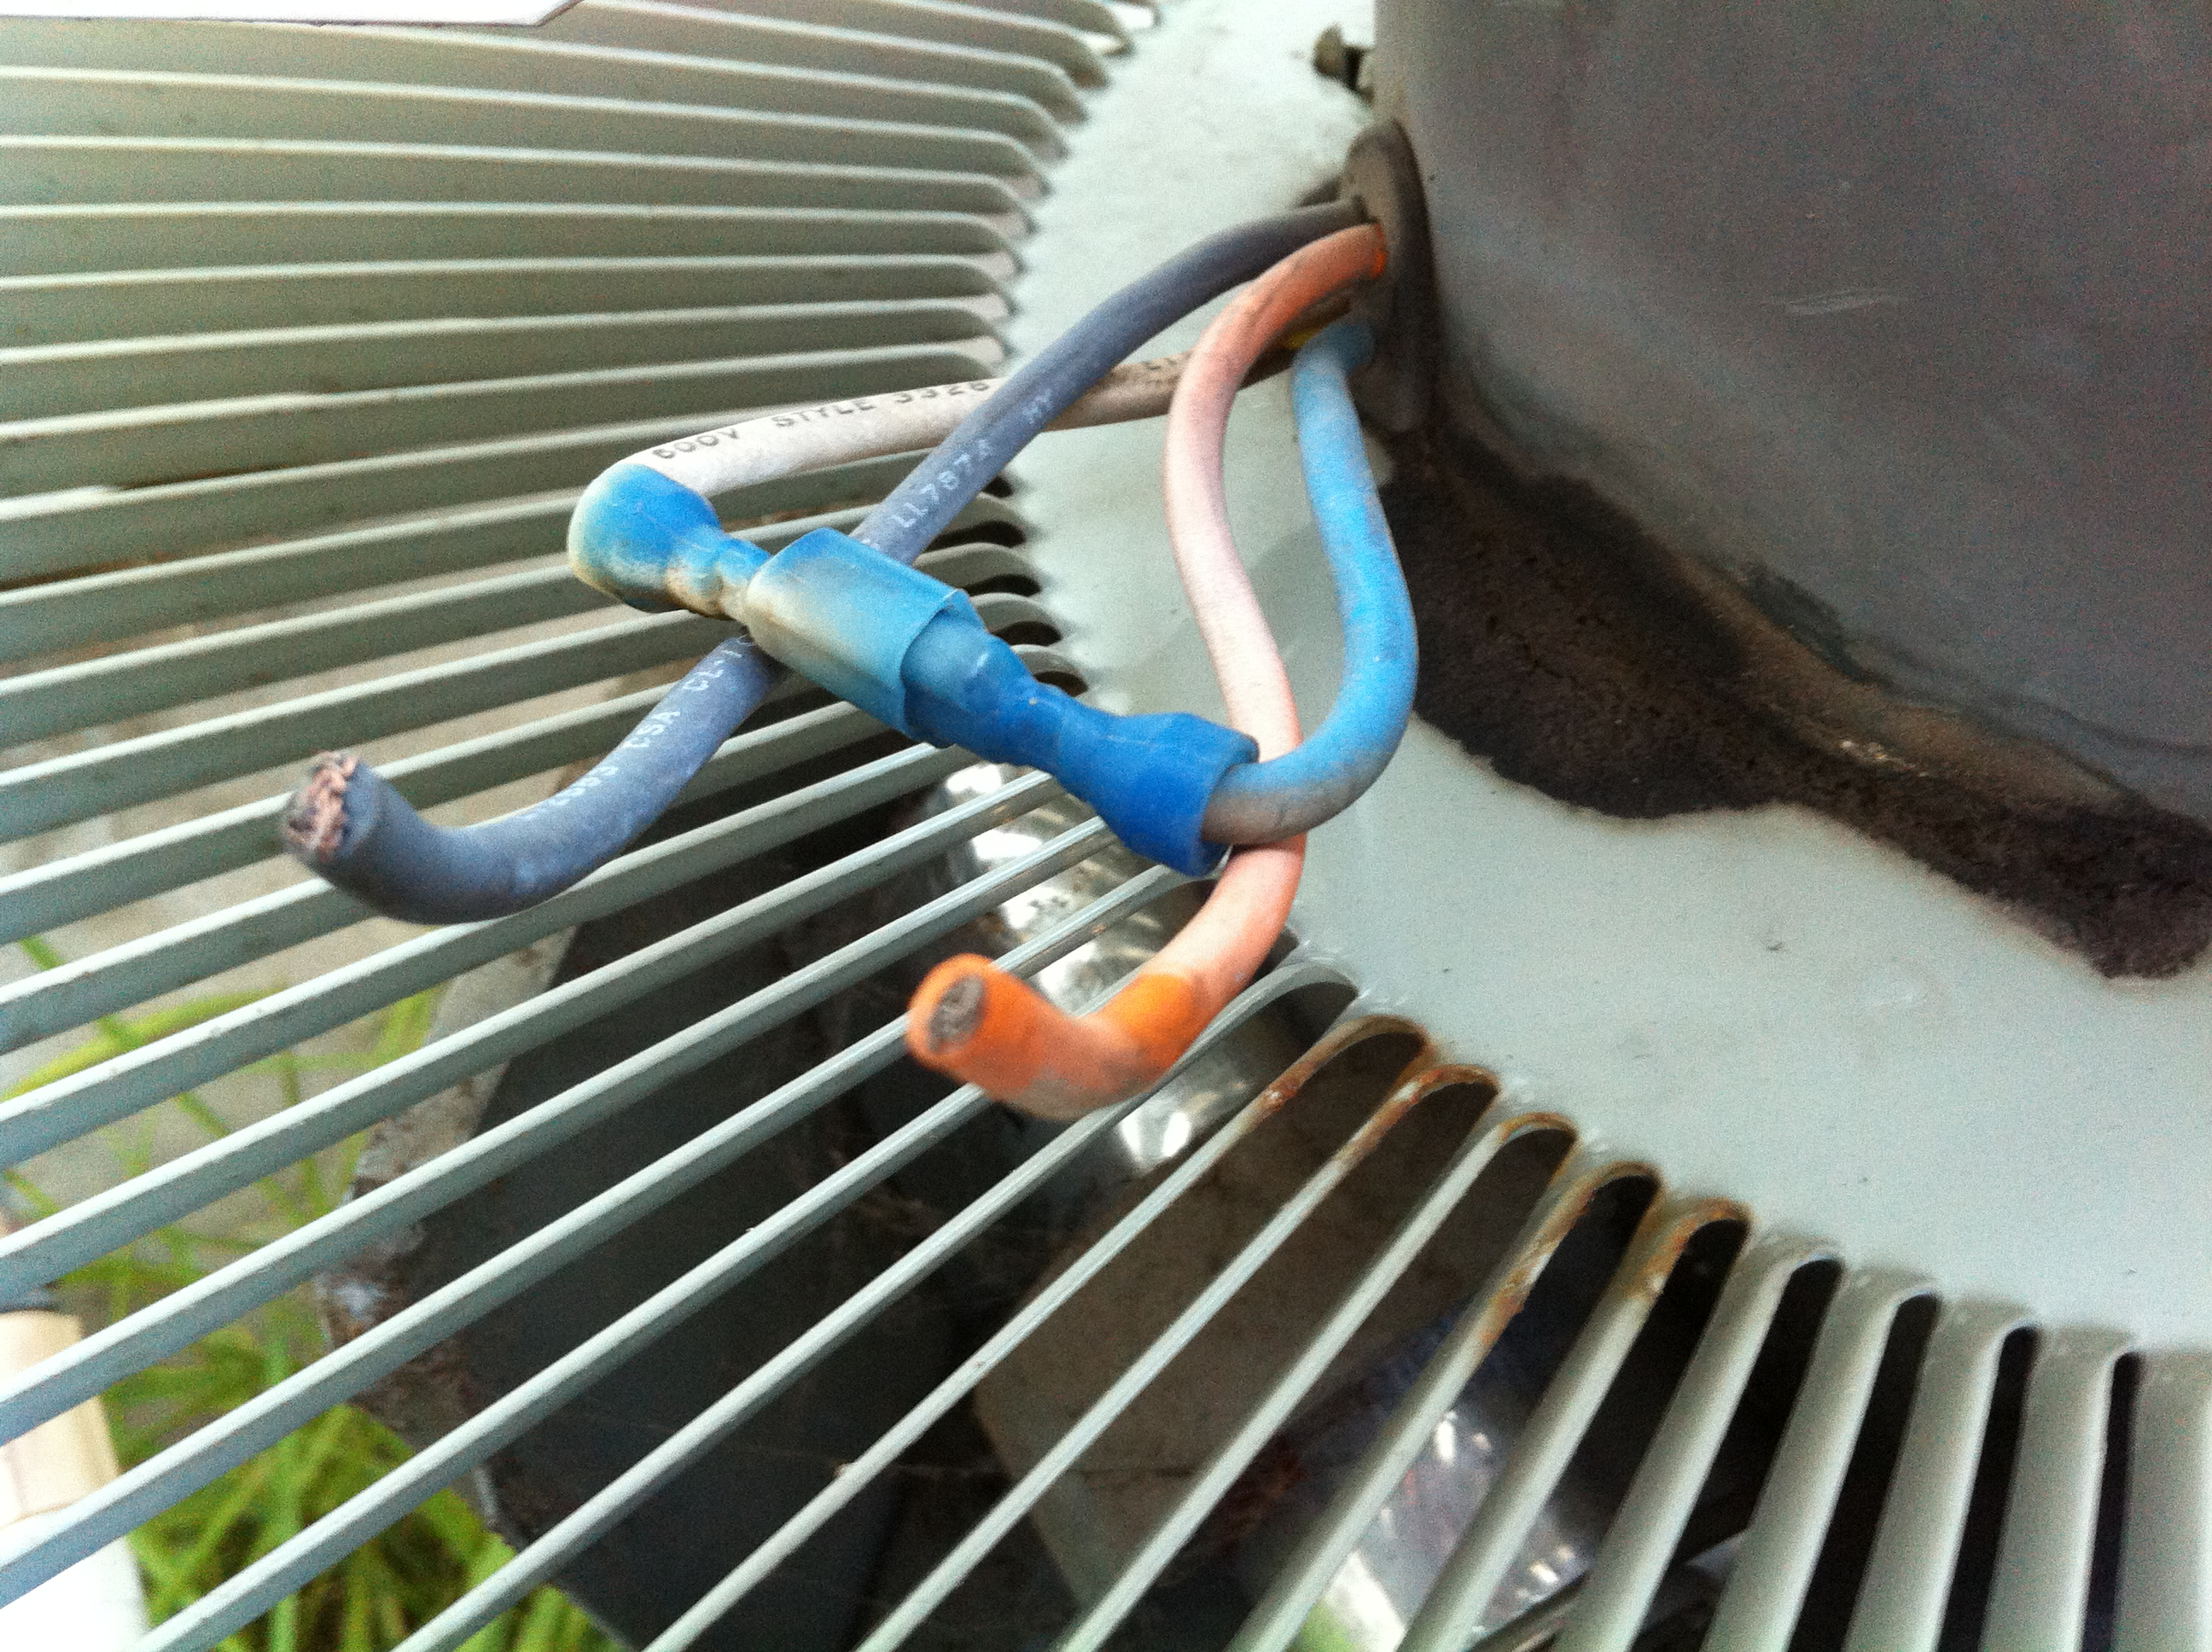 i have a trane xe 1000 model twr036c100a from 1998 i noticed customer replied 4 years ago